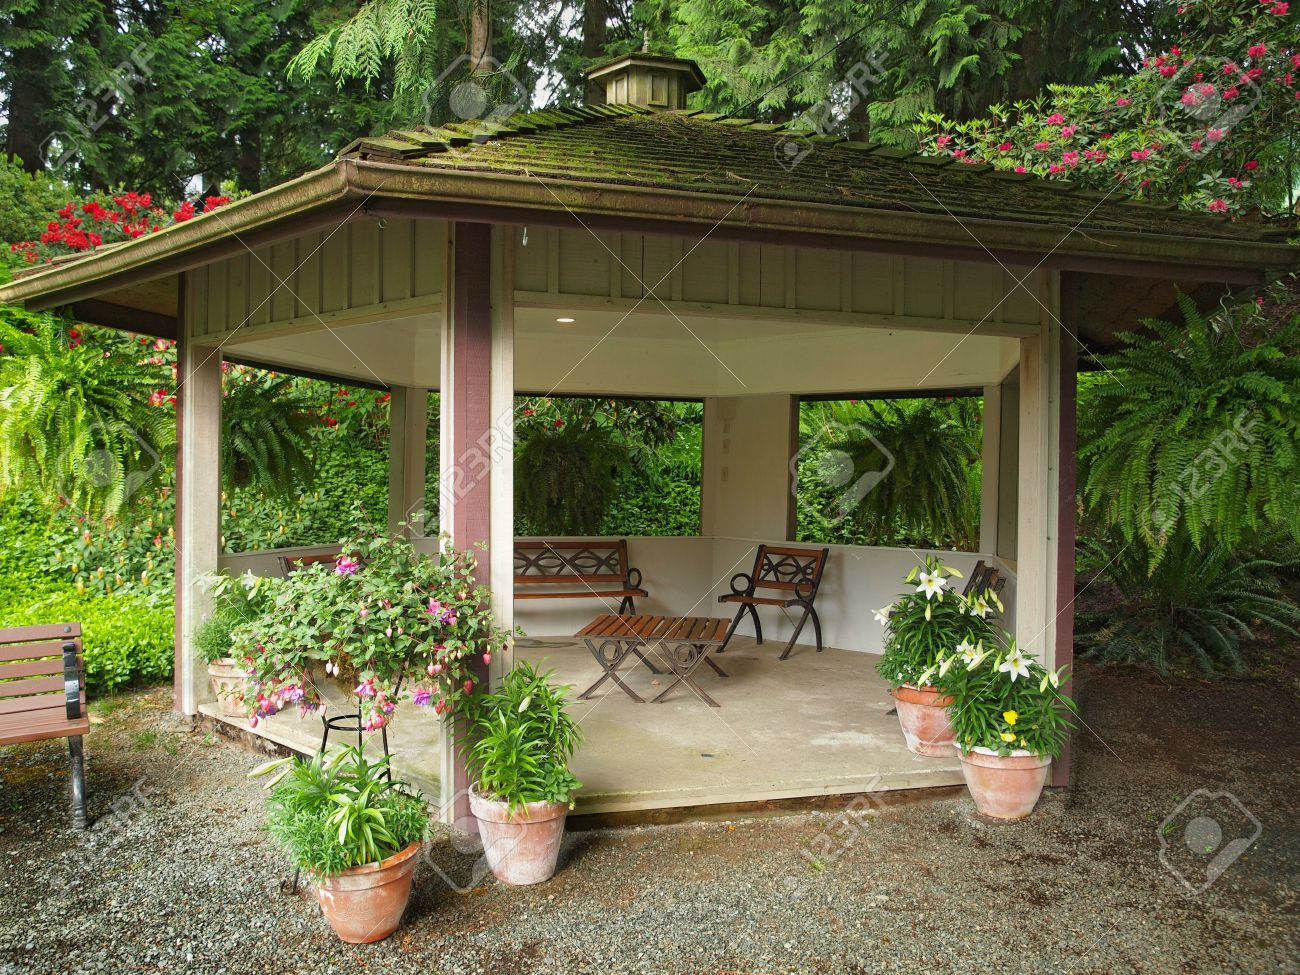 Garden Gazebo Stock Photos Images Royalty Free Garden Gazebo